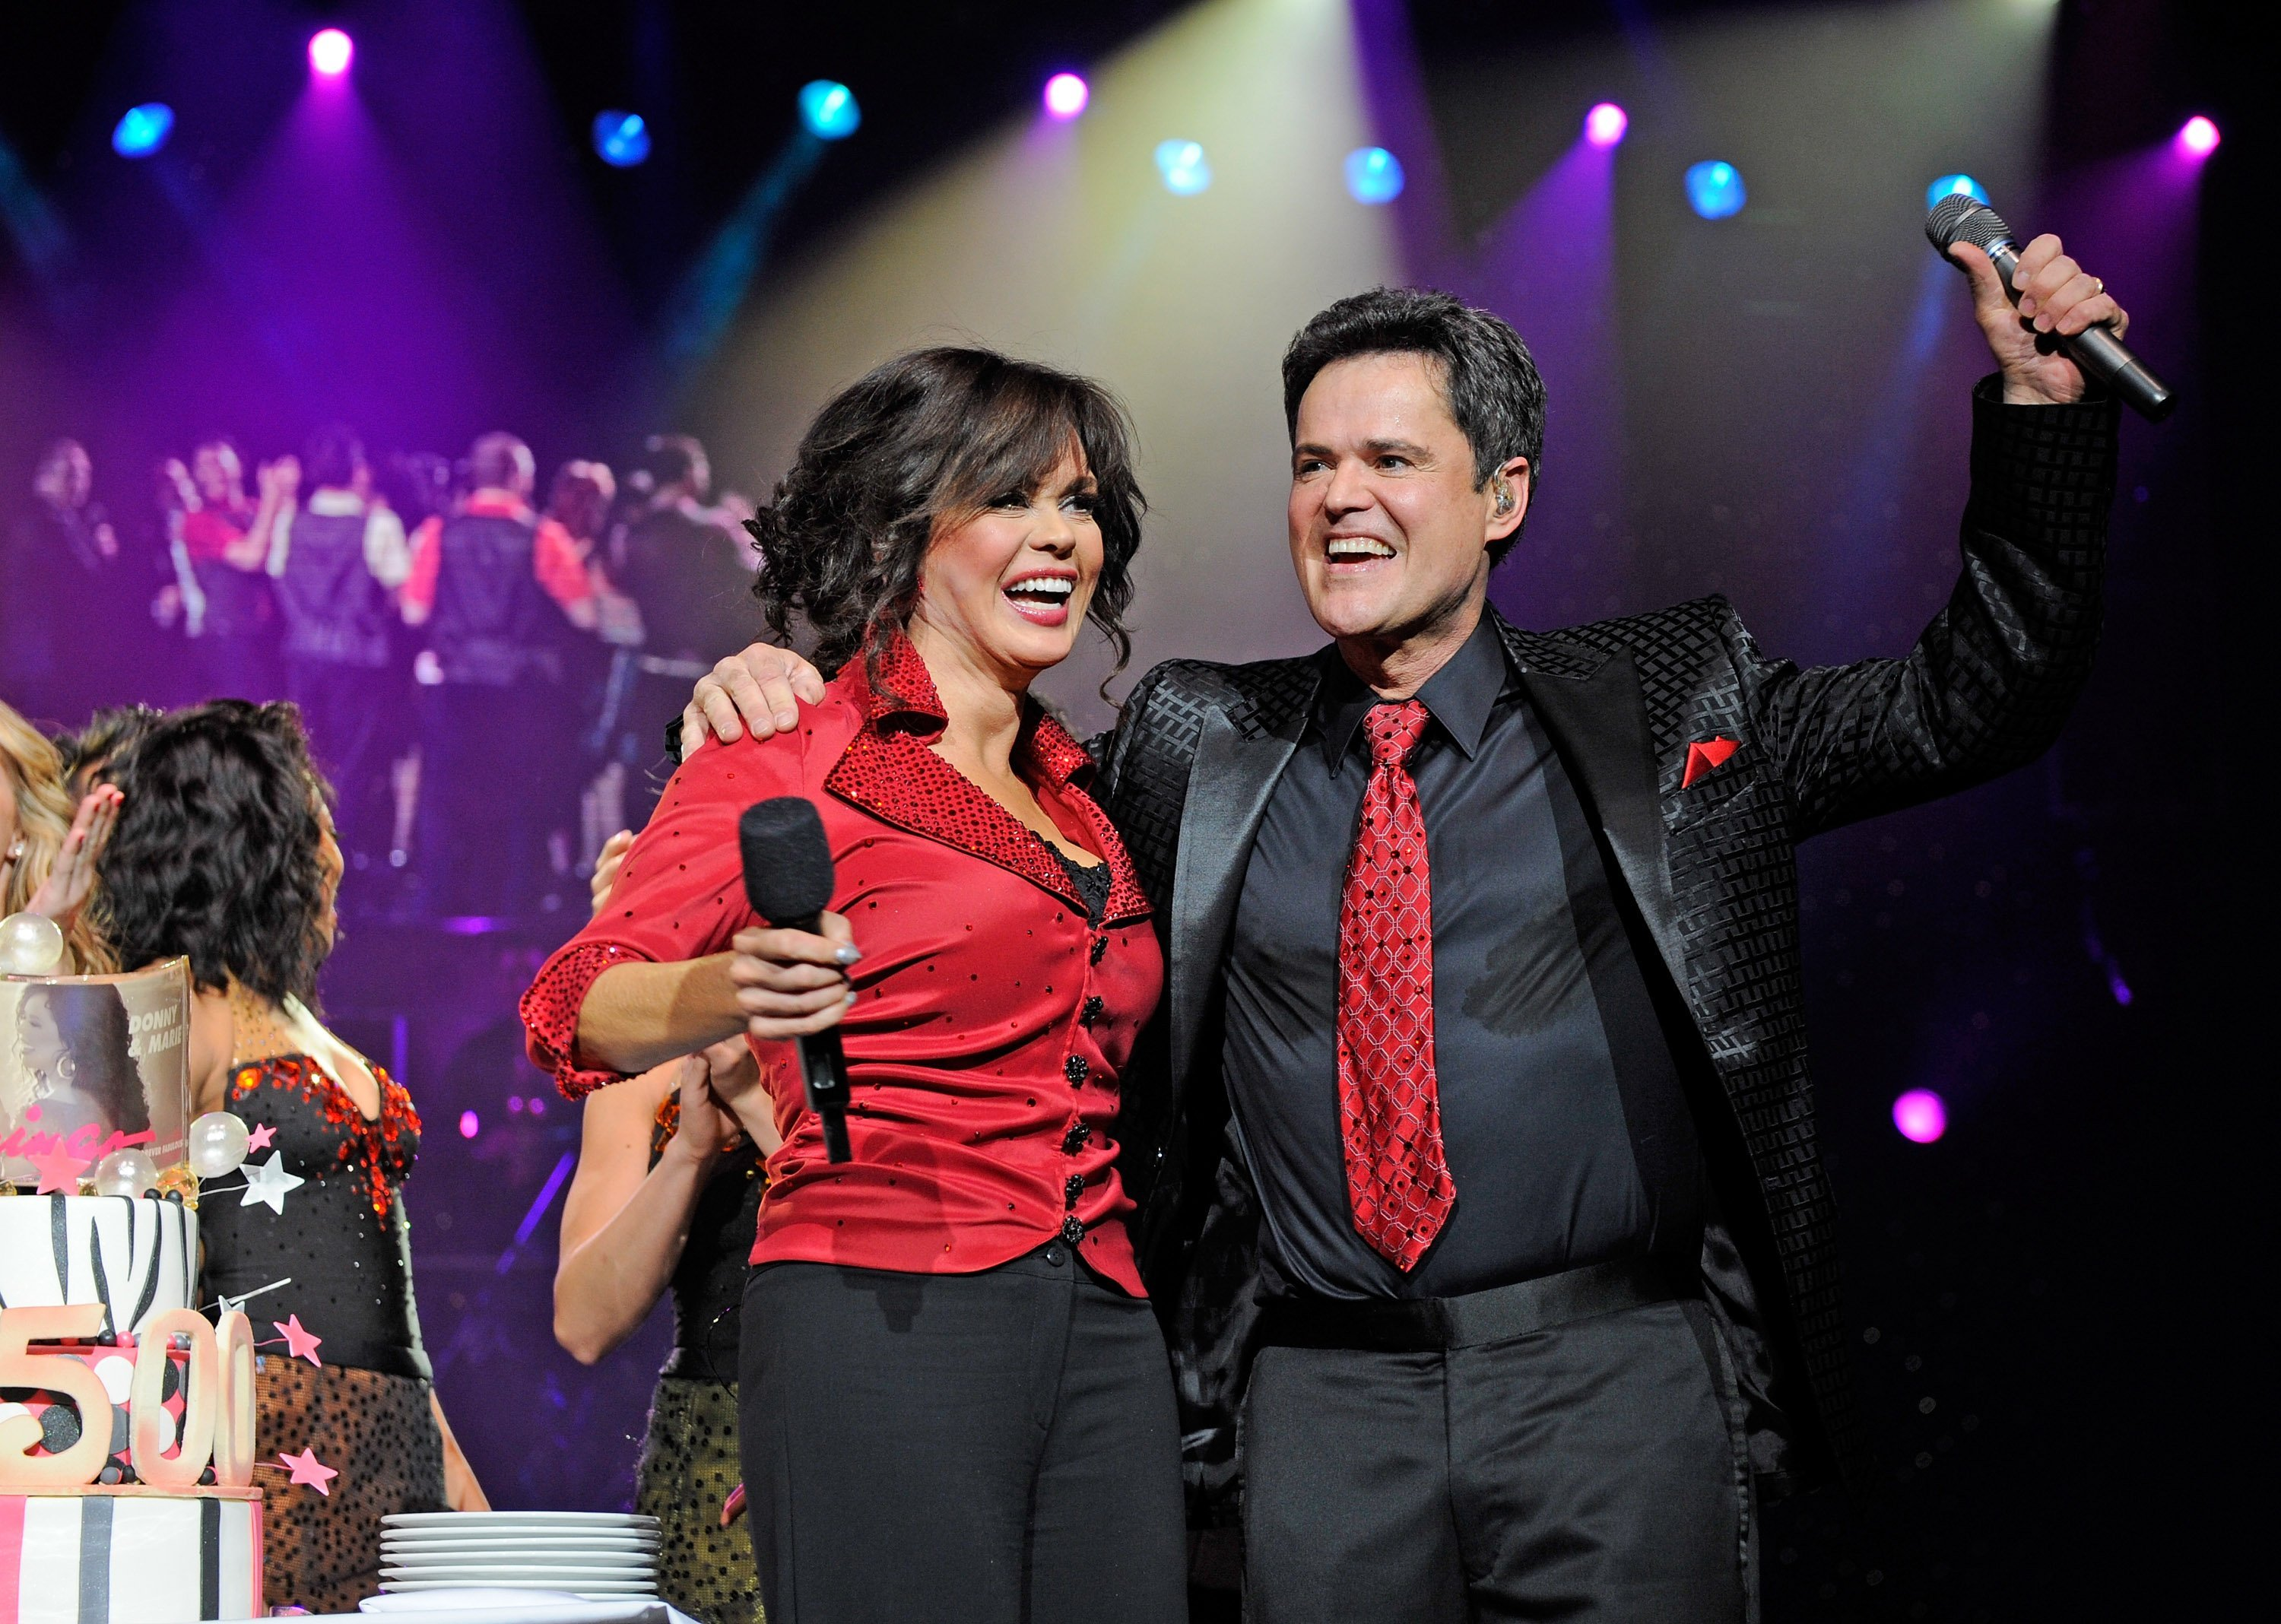 Marie and Donny Osmond performing together | Photo: Getty Images